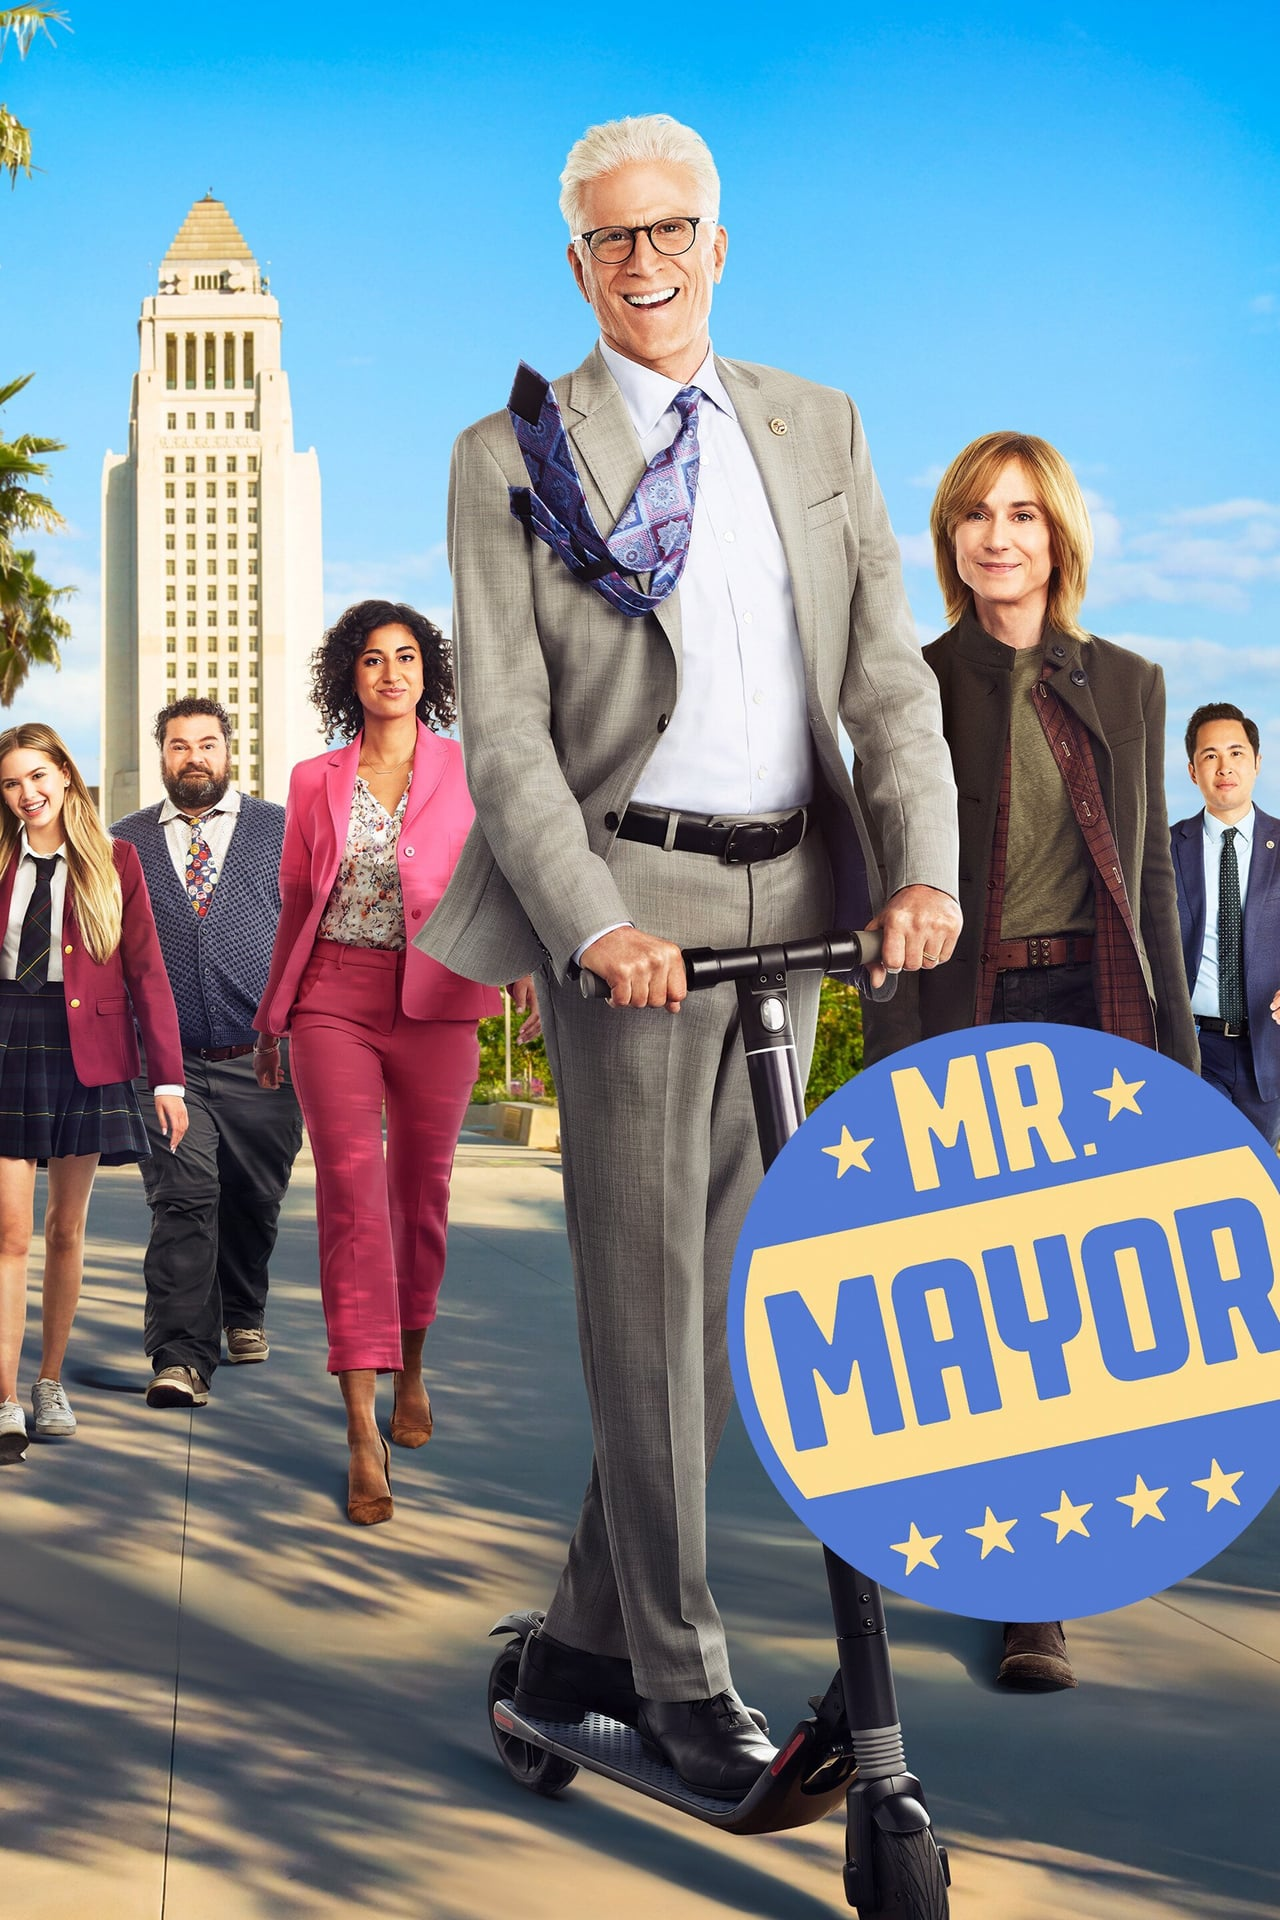 Mr. Mayor (season 1)